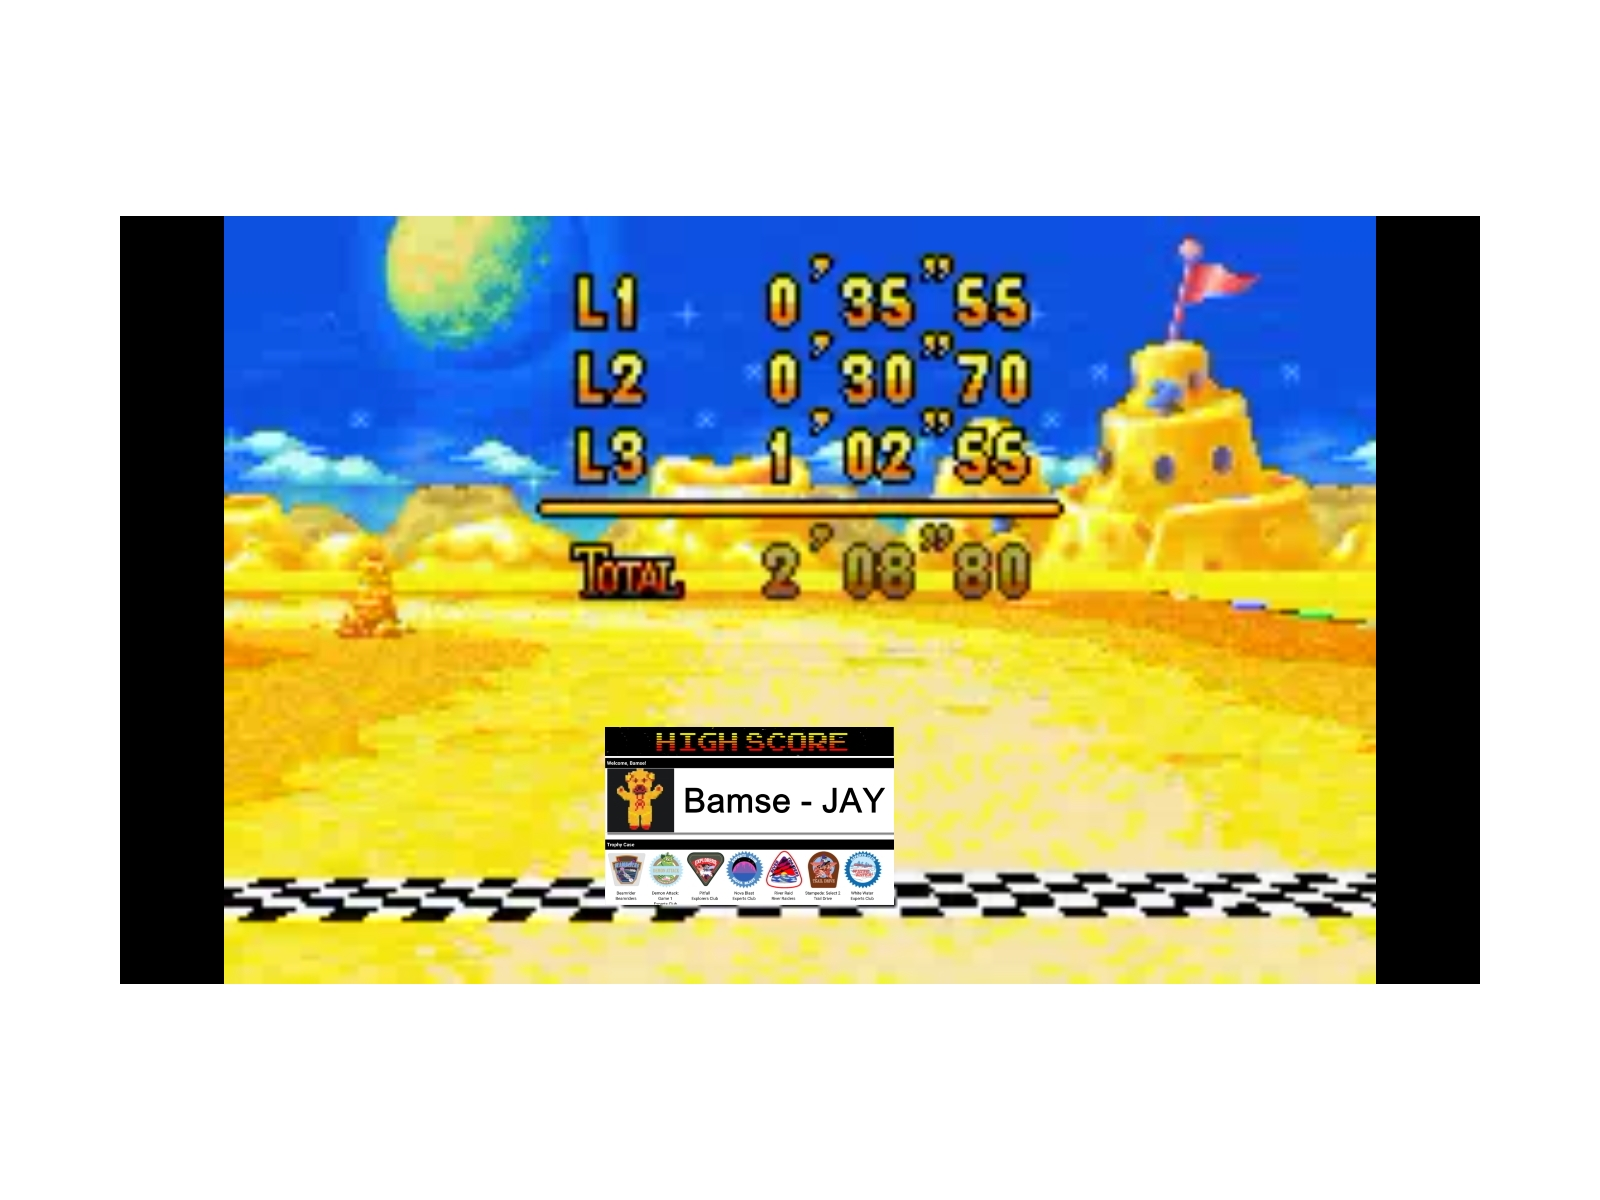 Bamse: Mario Kart Super Circuit: Cheese Land [50cc] (GBA Emulated) 0:02:08.8 points on 2019-12-17 13:37:20